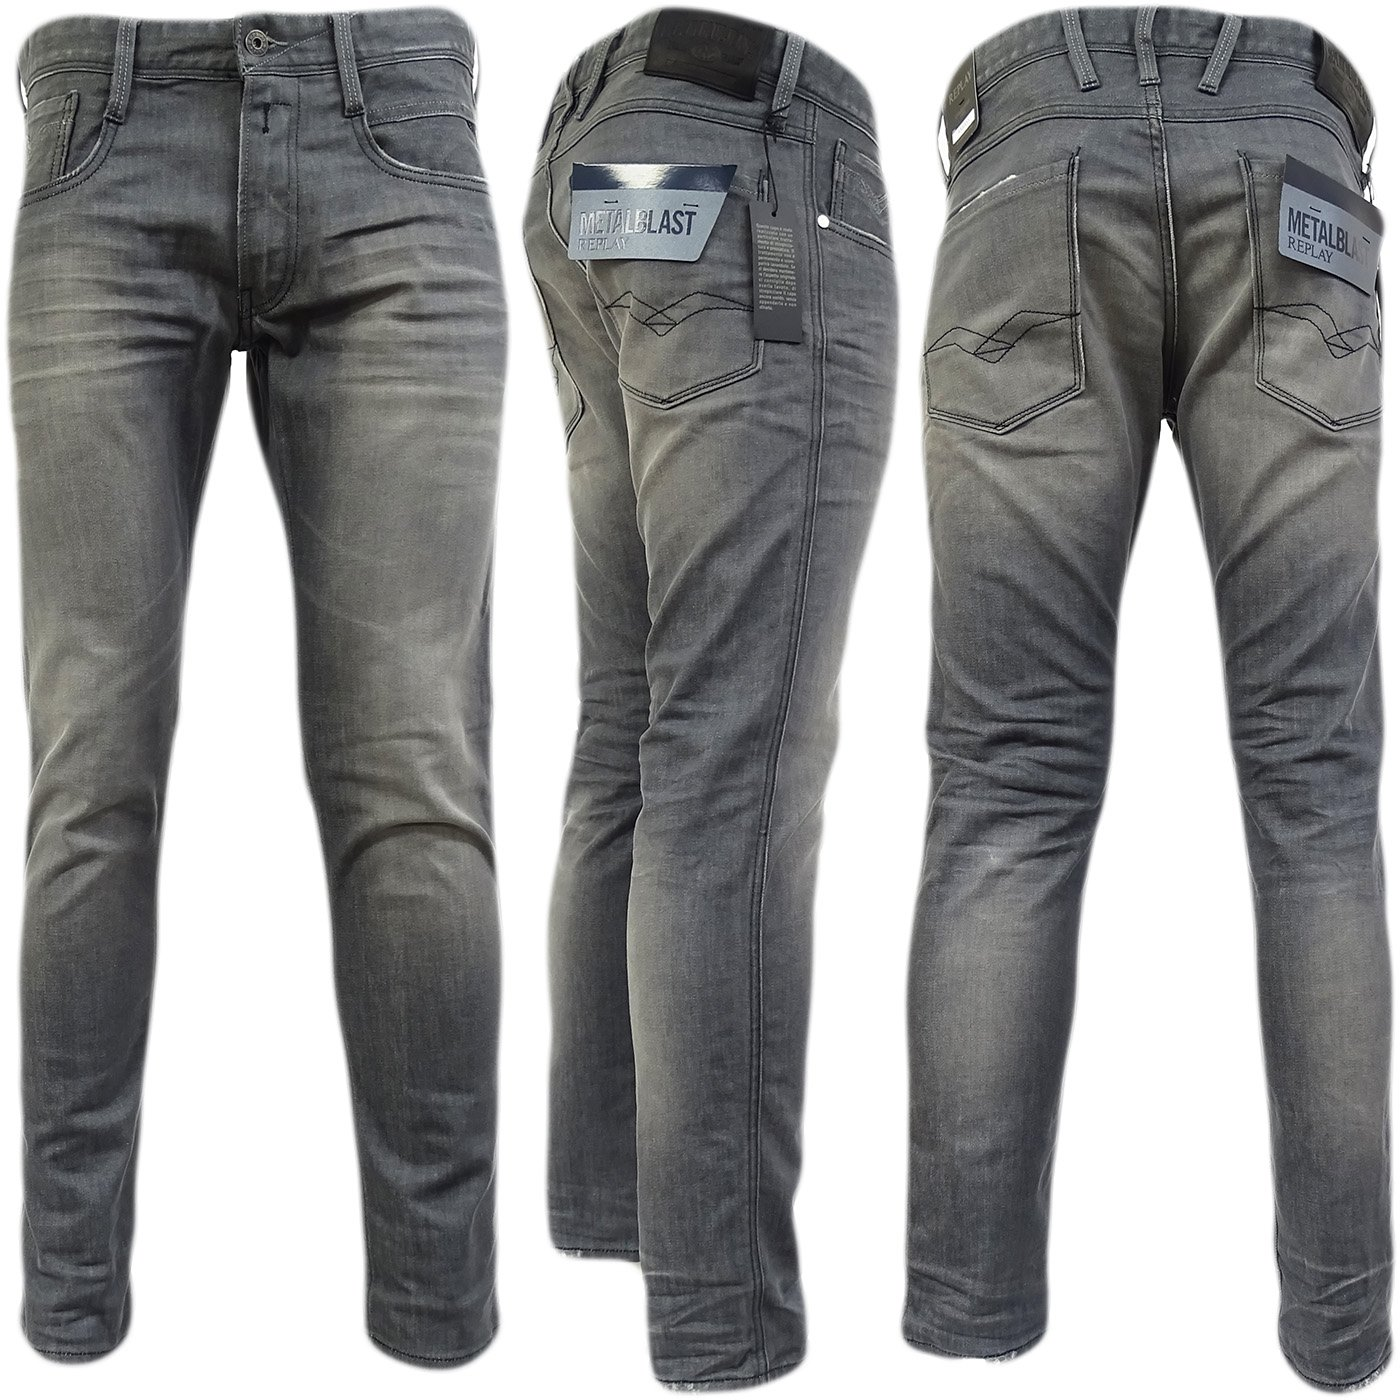 Replay Grey Anbass Slim Fit Grey - M914-21C-166-009 'Anbass' 34/32